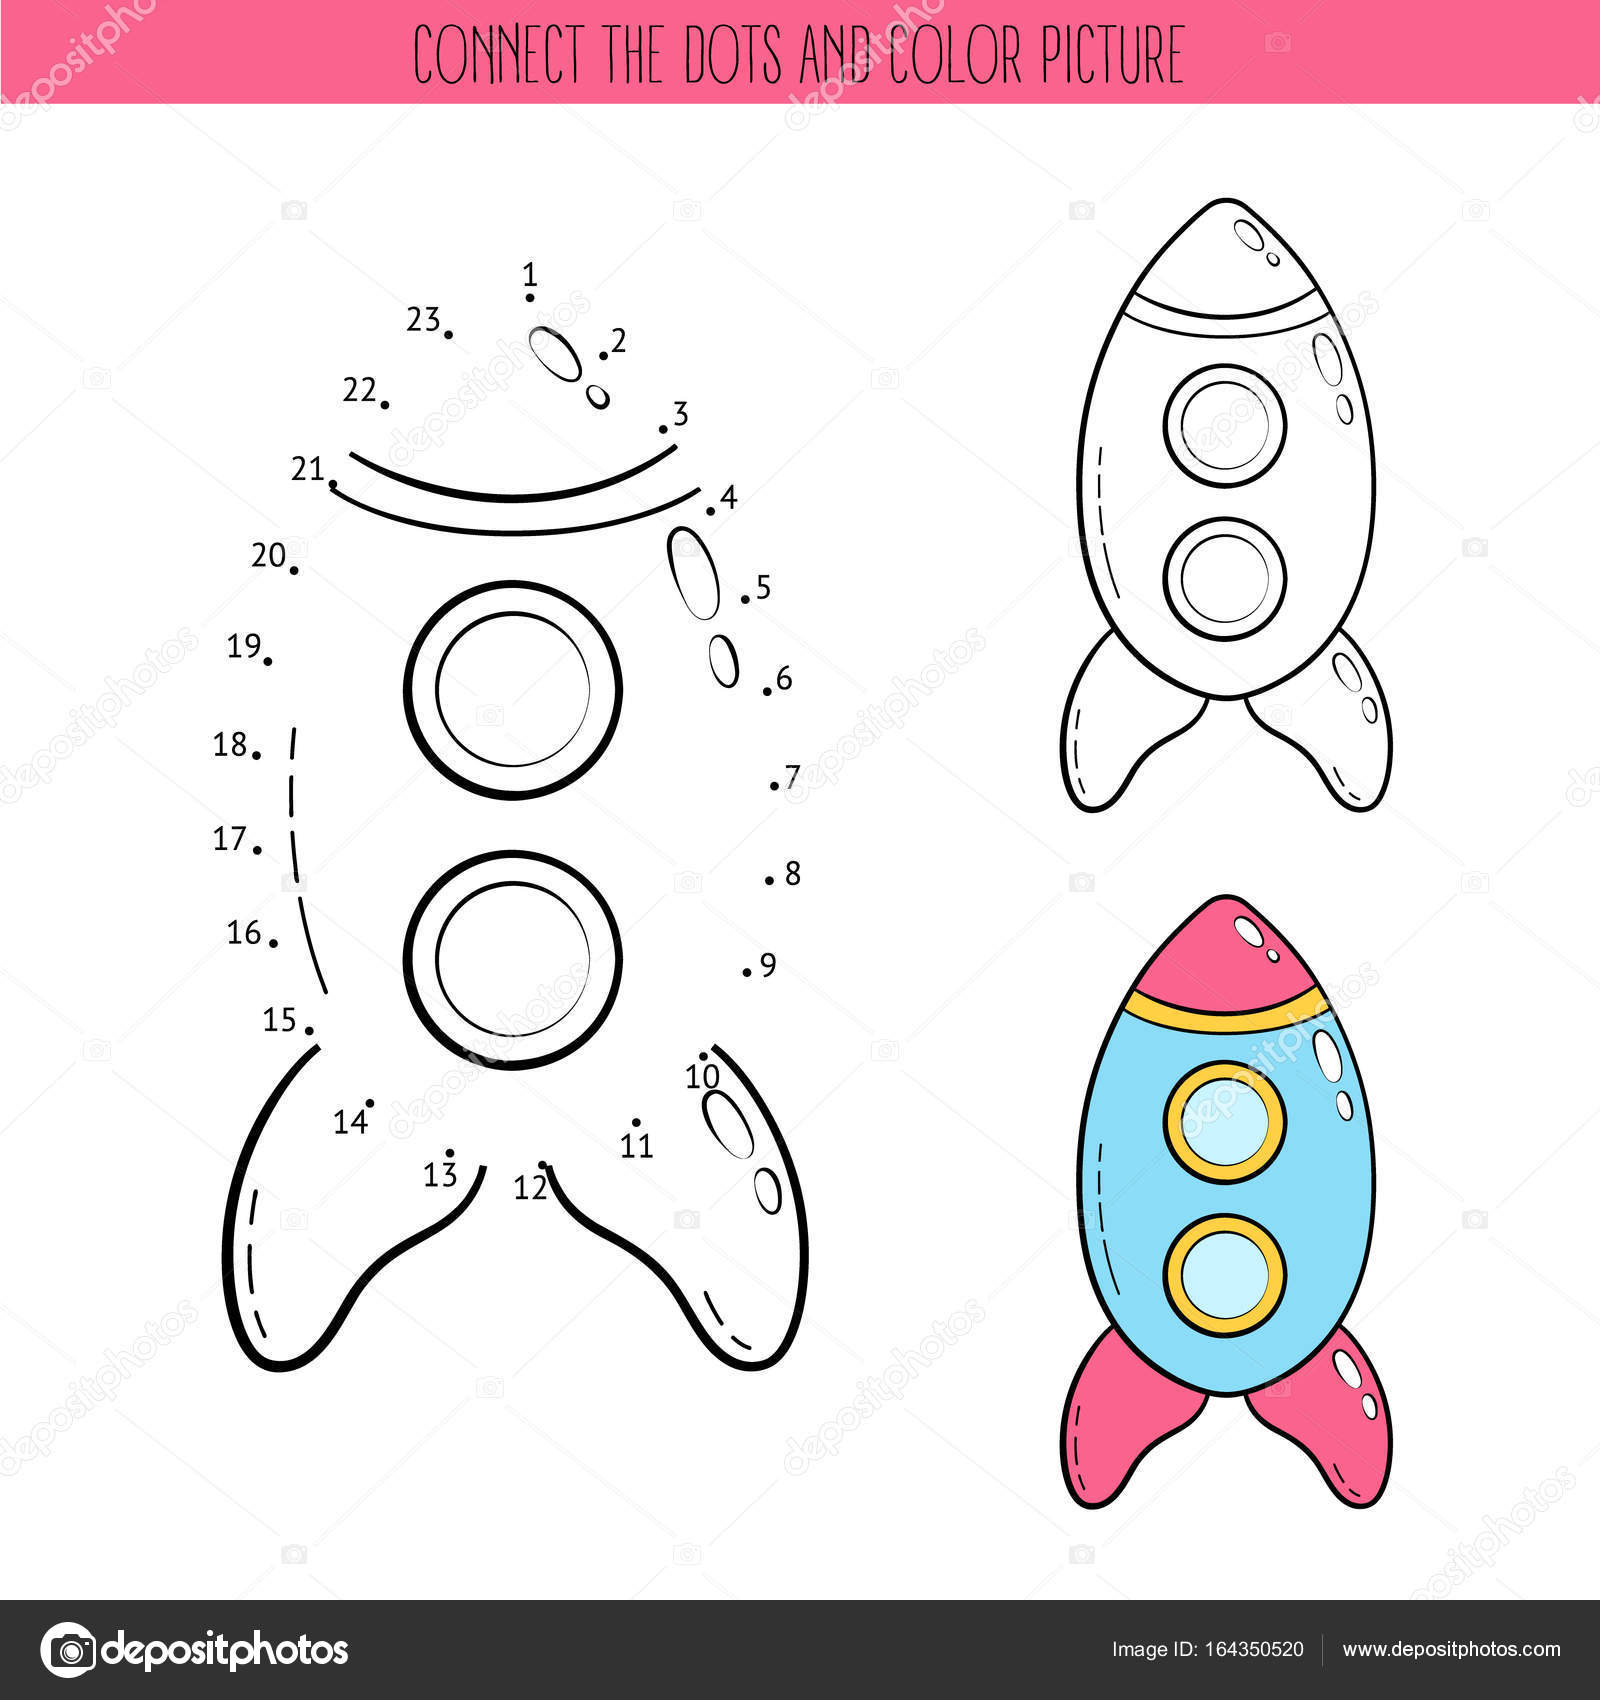 Coloring Book And Dot To Dot Educational Game For Kids Connect The